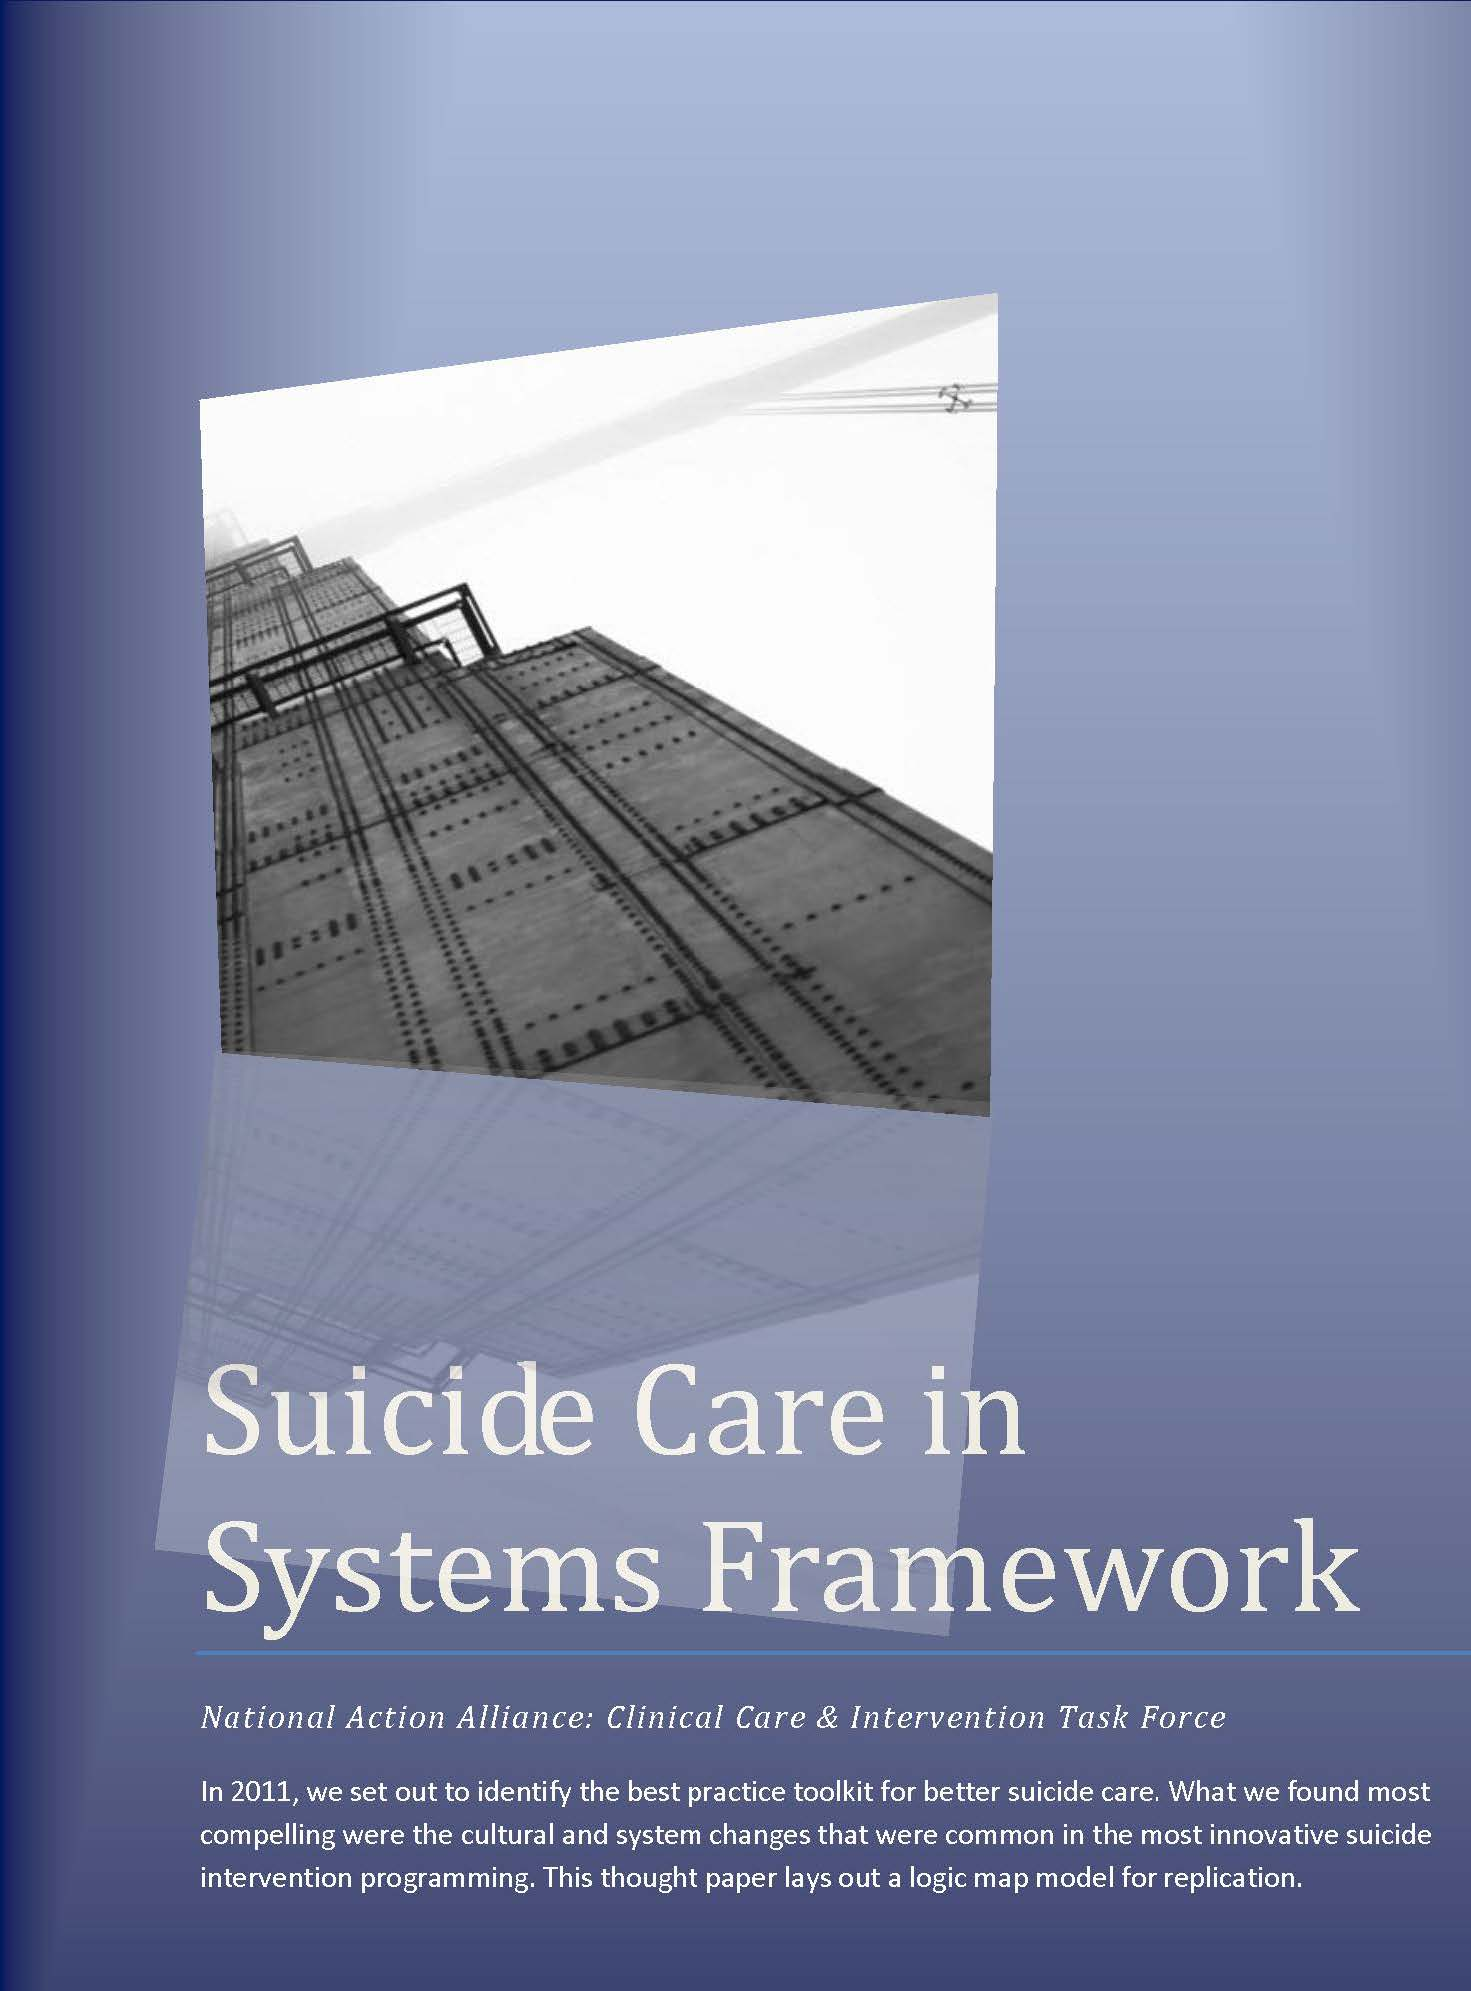 Suicide Care in Systems Framework